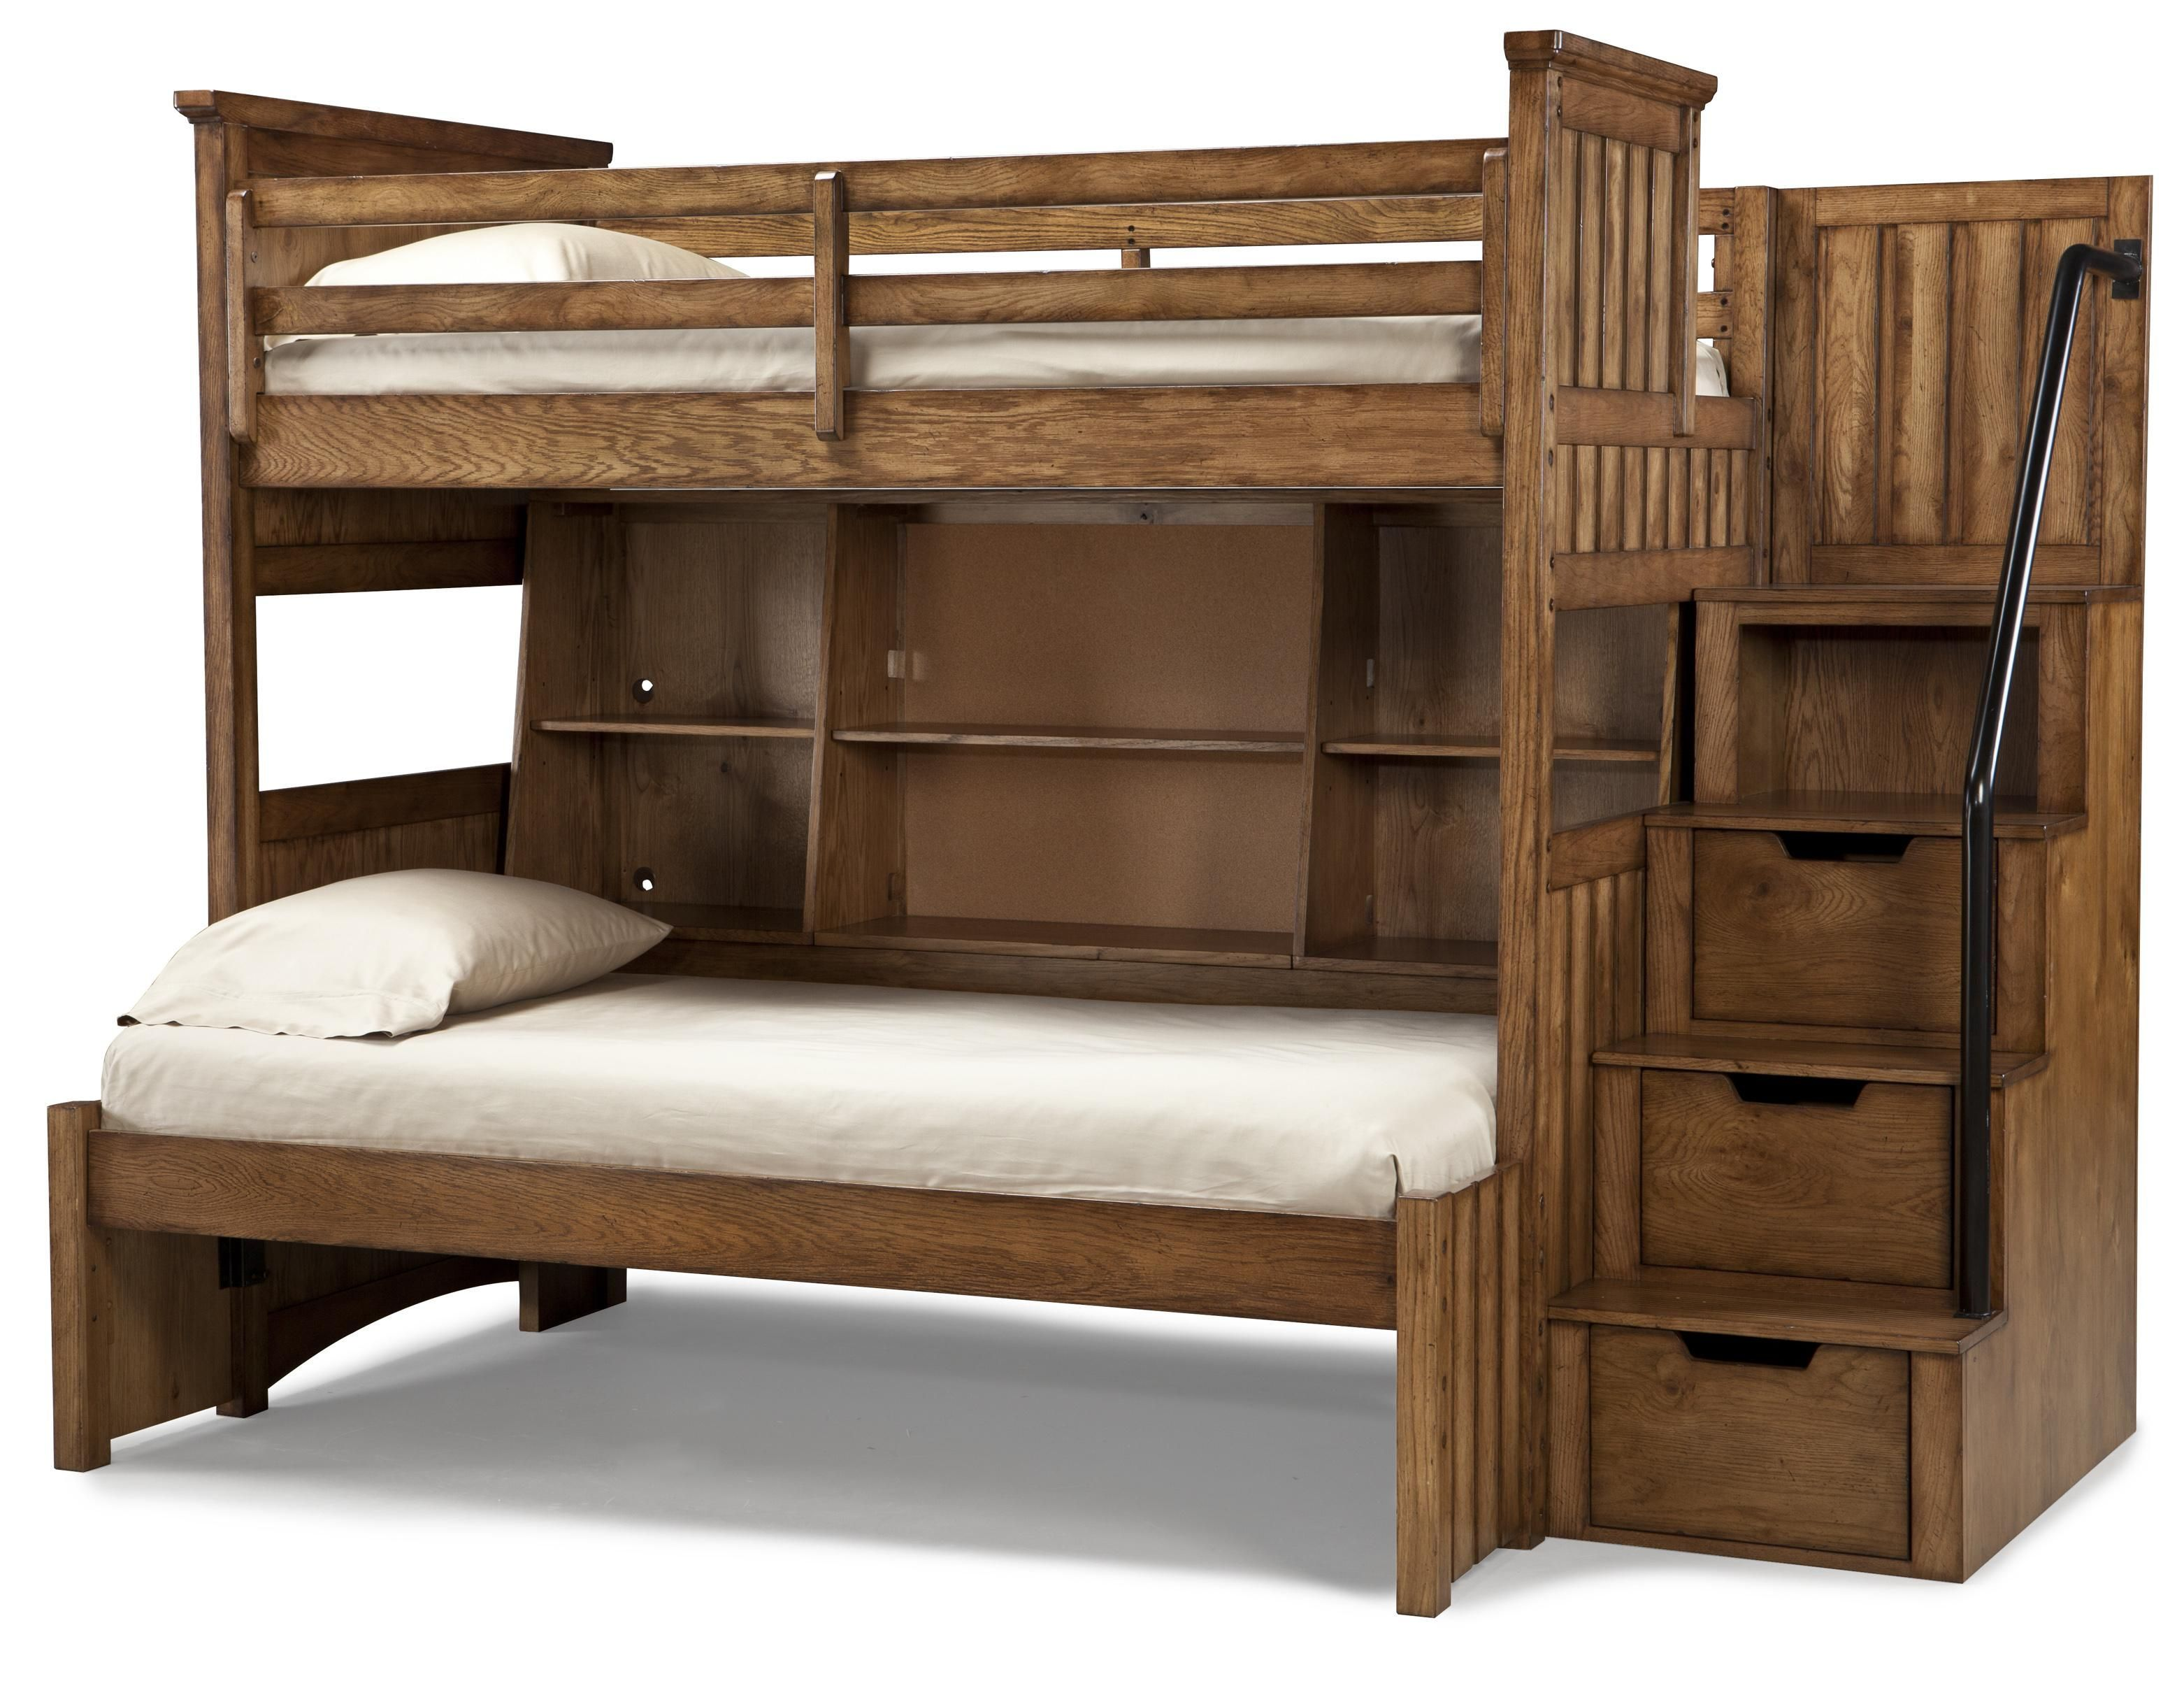 55 Bunk Bed With Built In Wardrobe Desk And Chunky Steps Check